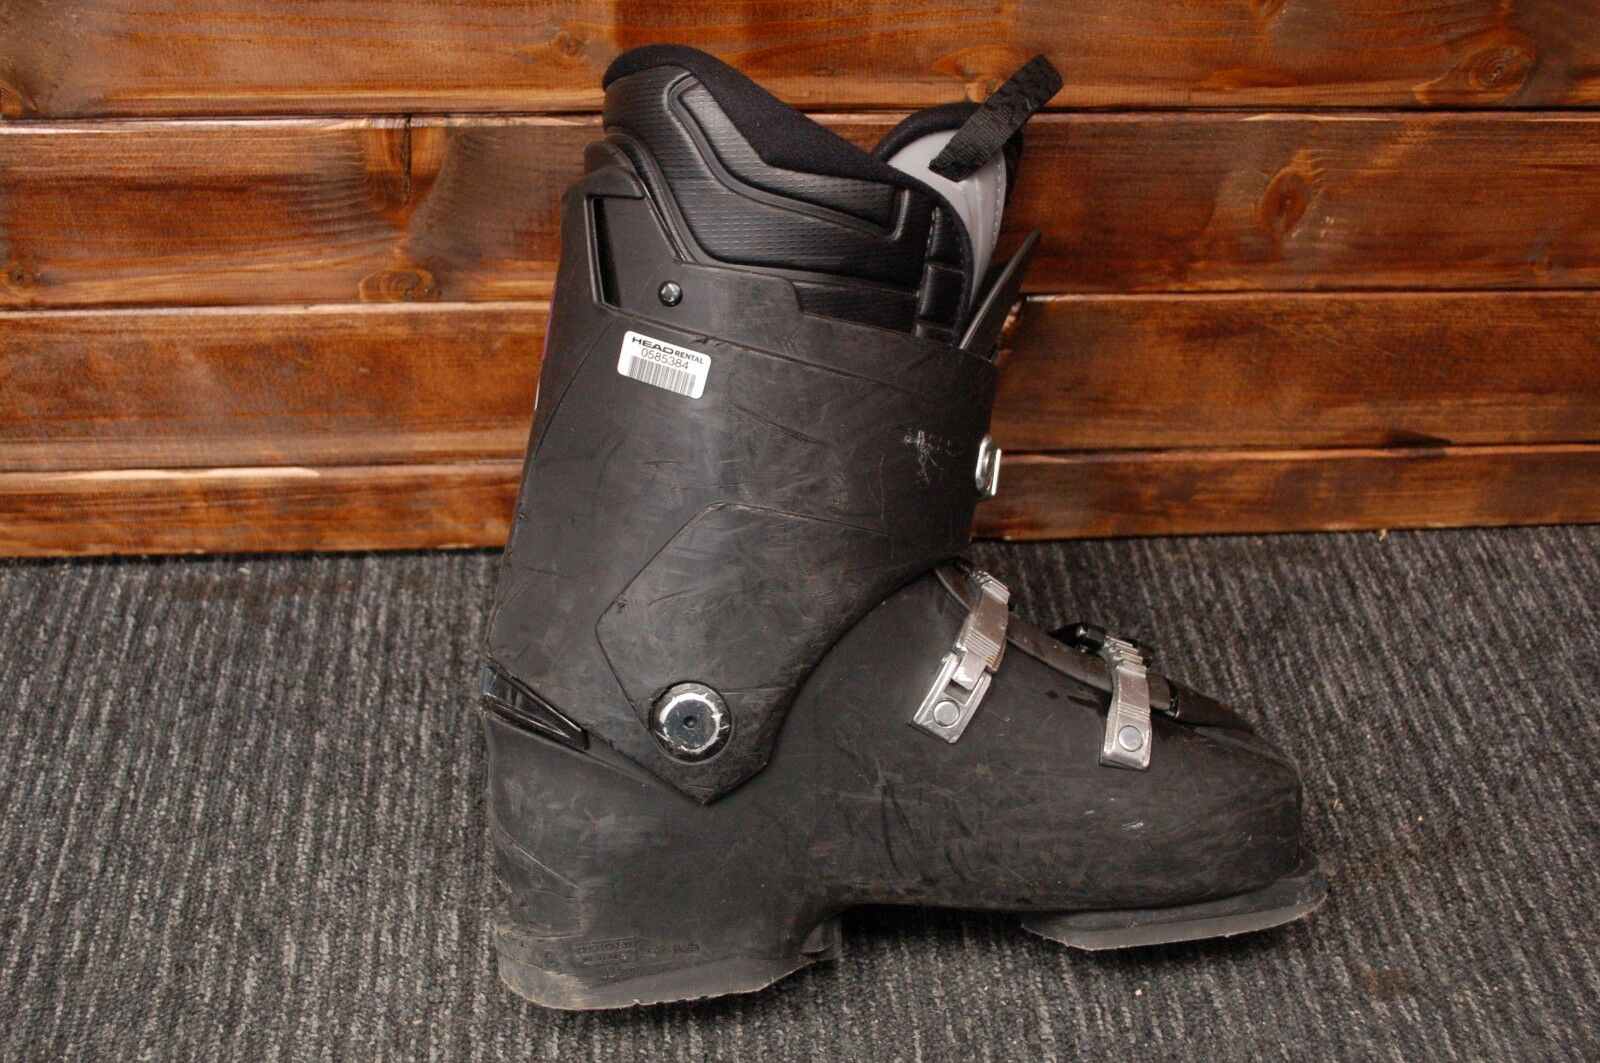 HEAD FX 65 HT Ski Stiefel (US 9; EU EU EU 42.5; UK 8.5) 6fa7fb